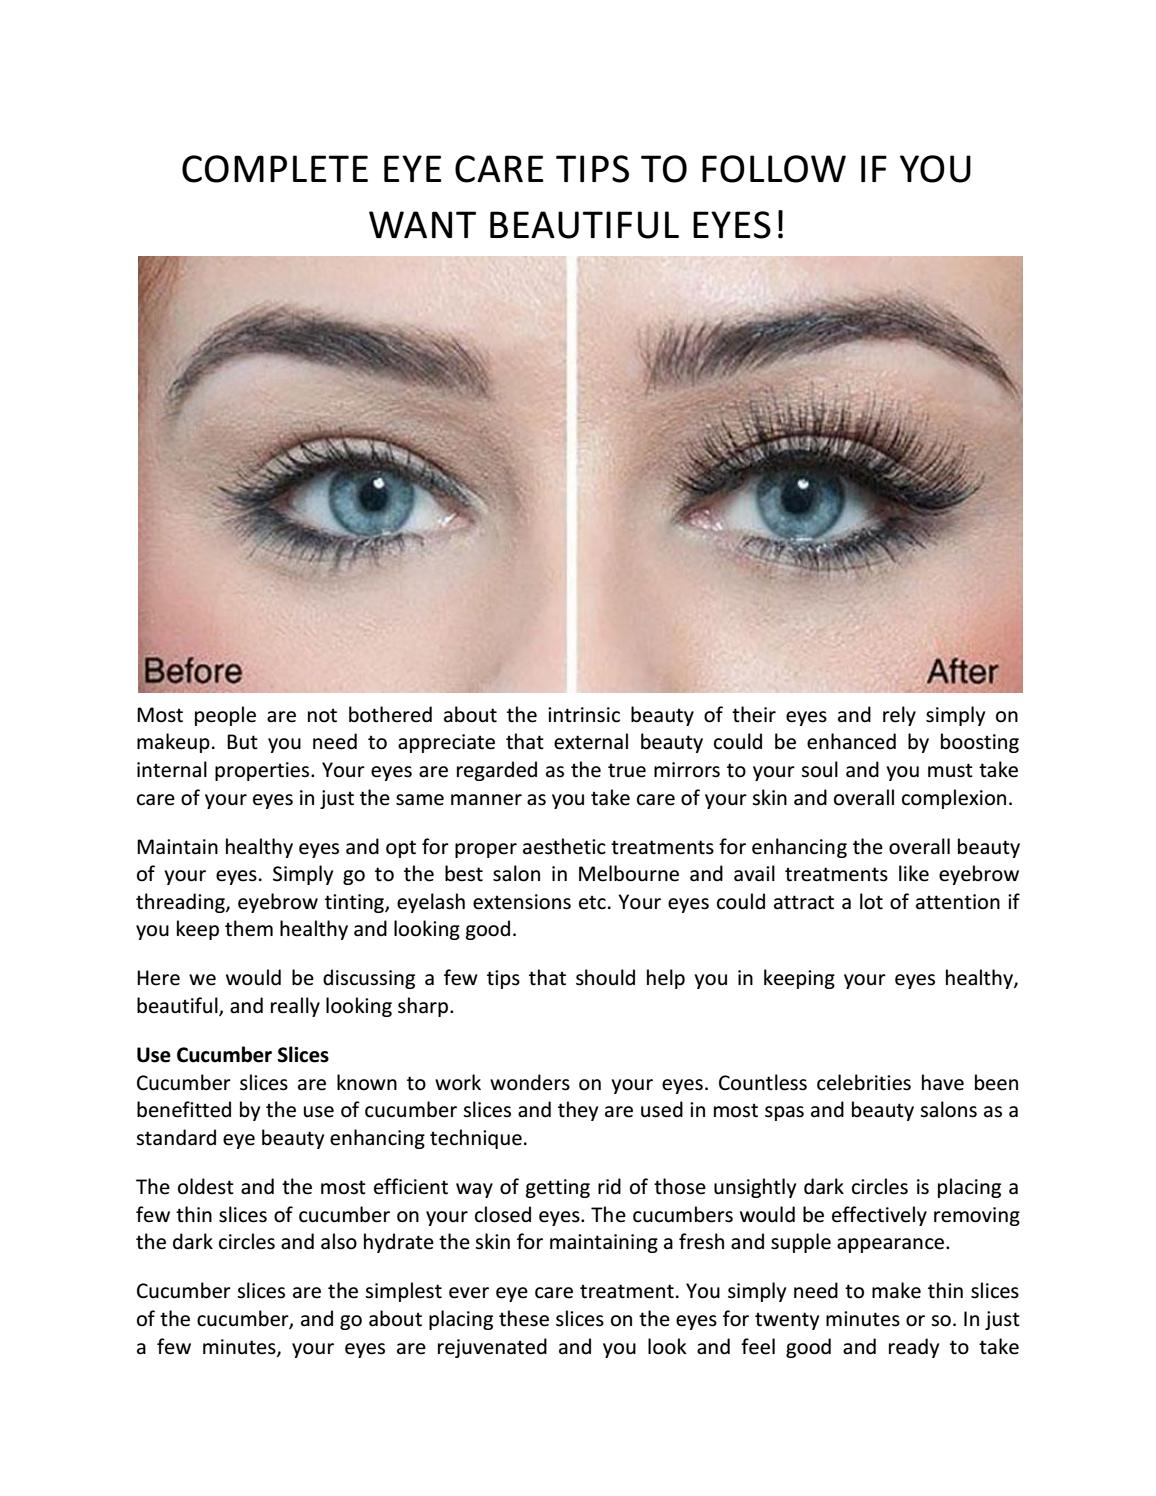 Complete Eye Care Tips To Follow If You Want Beautiful Eyes – Play